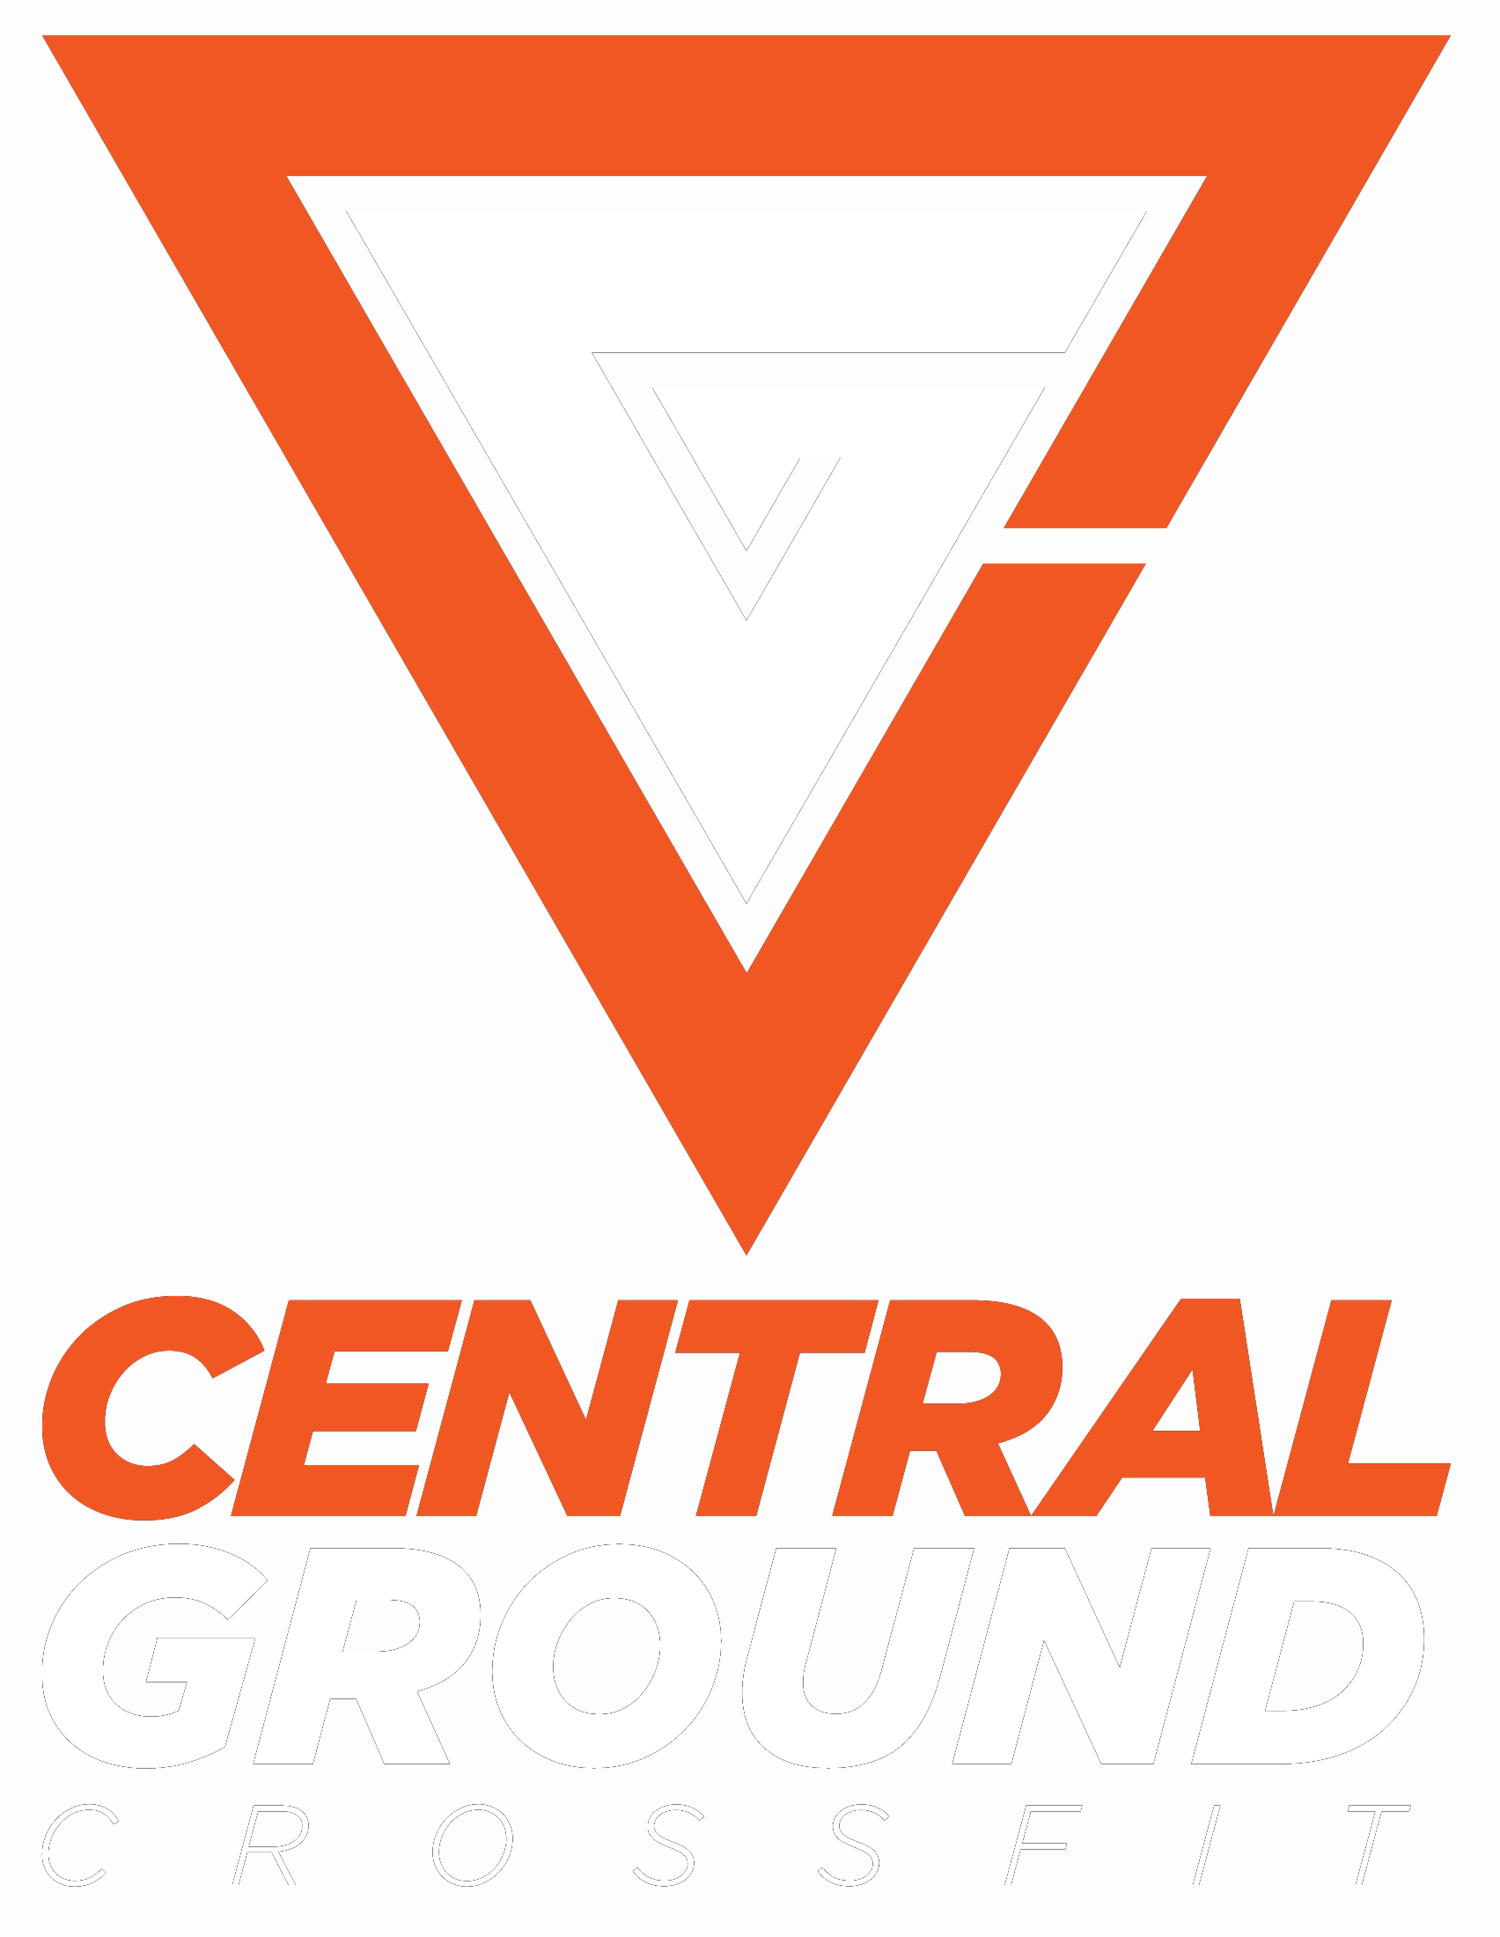 Central Ground CrossFit